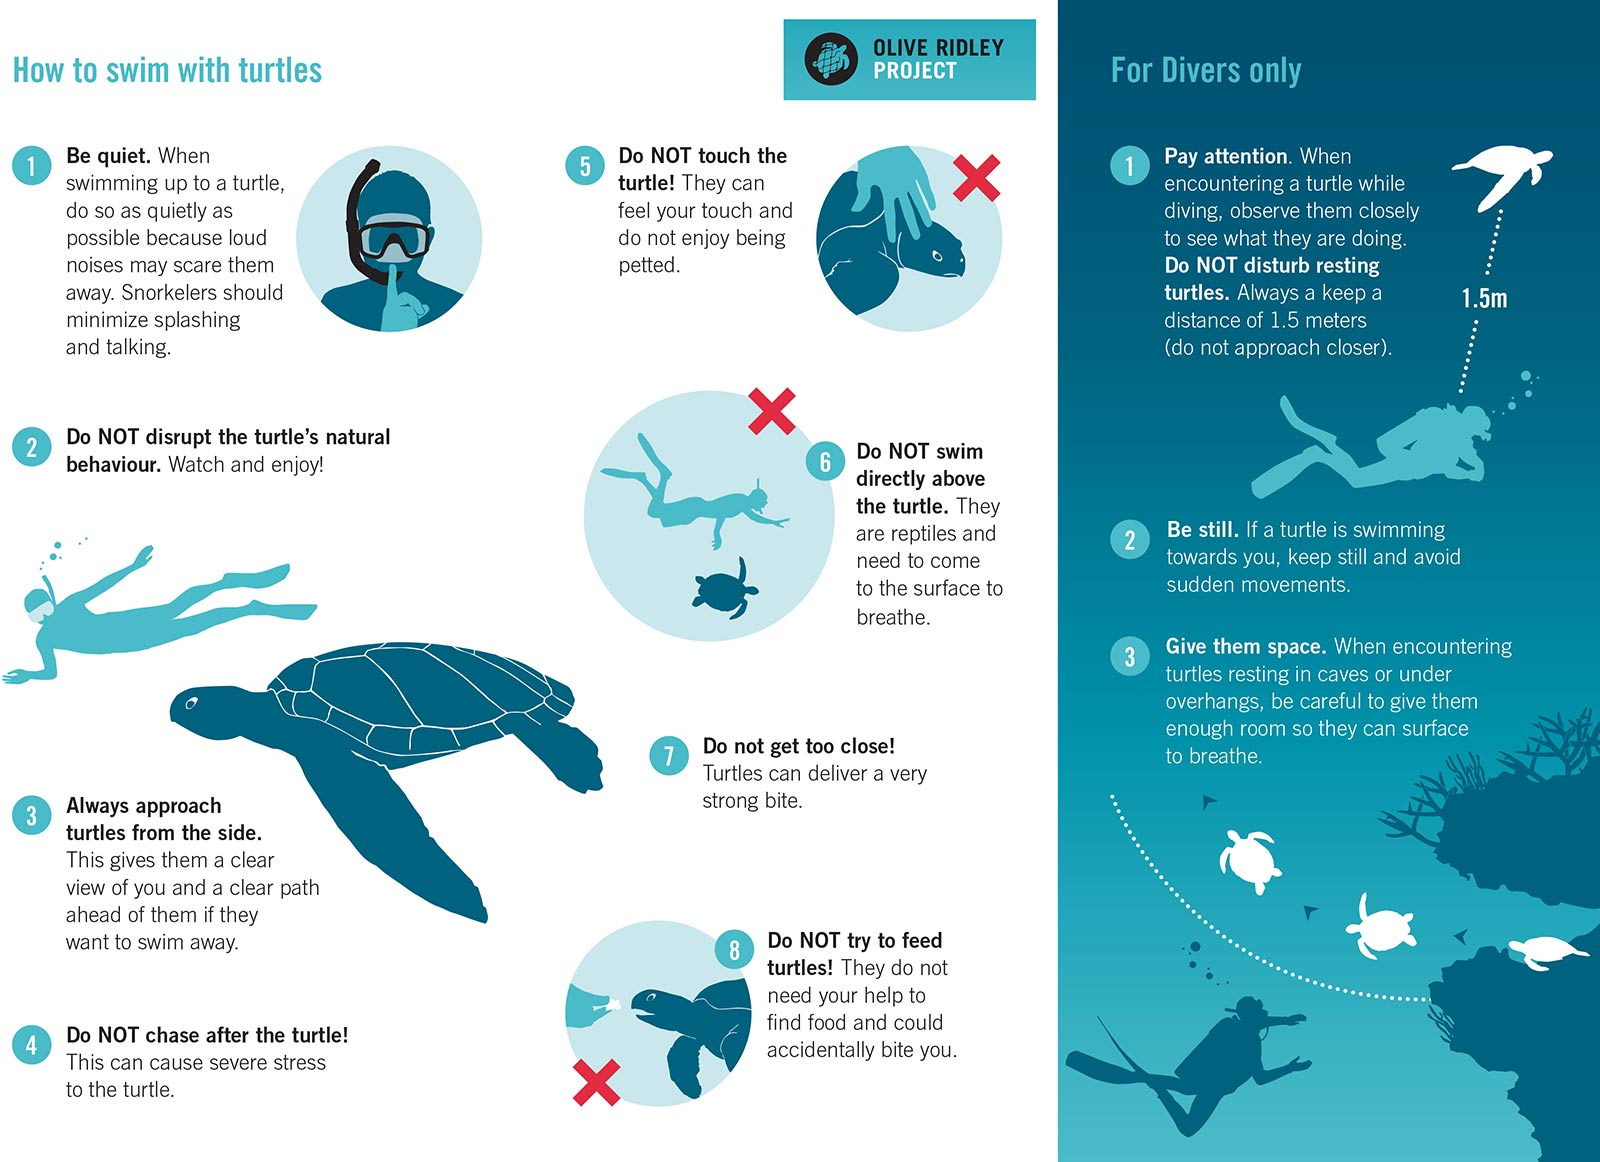 How to Swim With Turtles